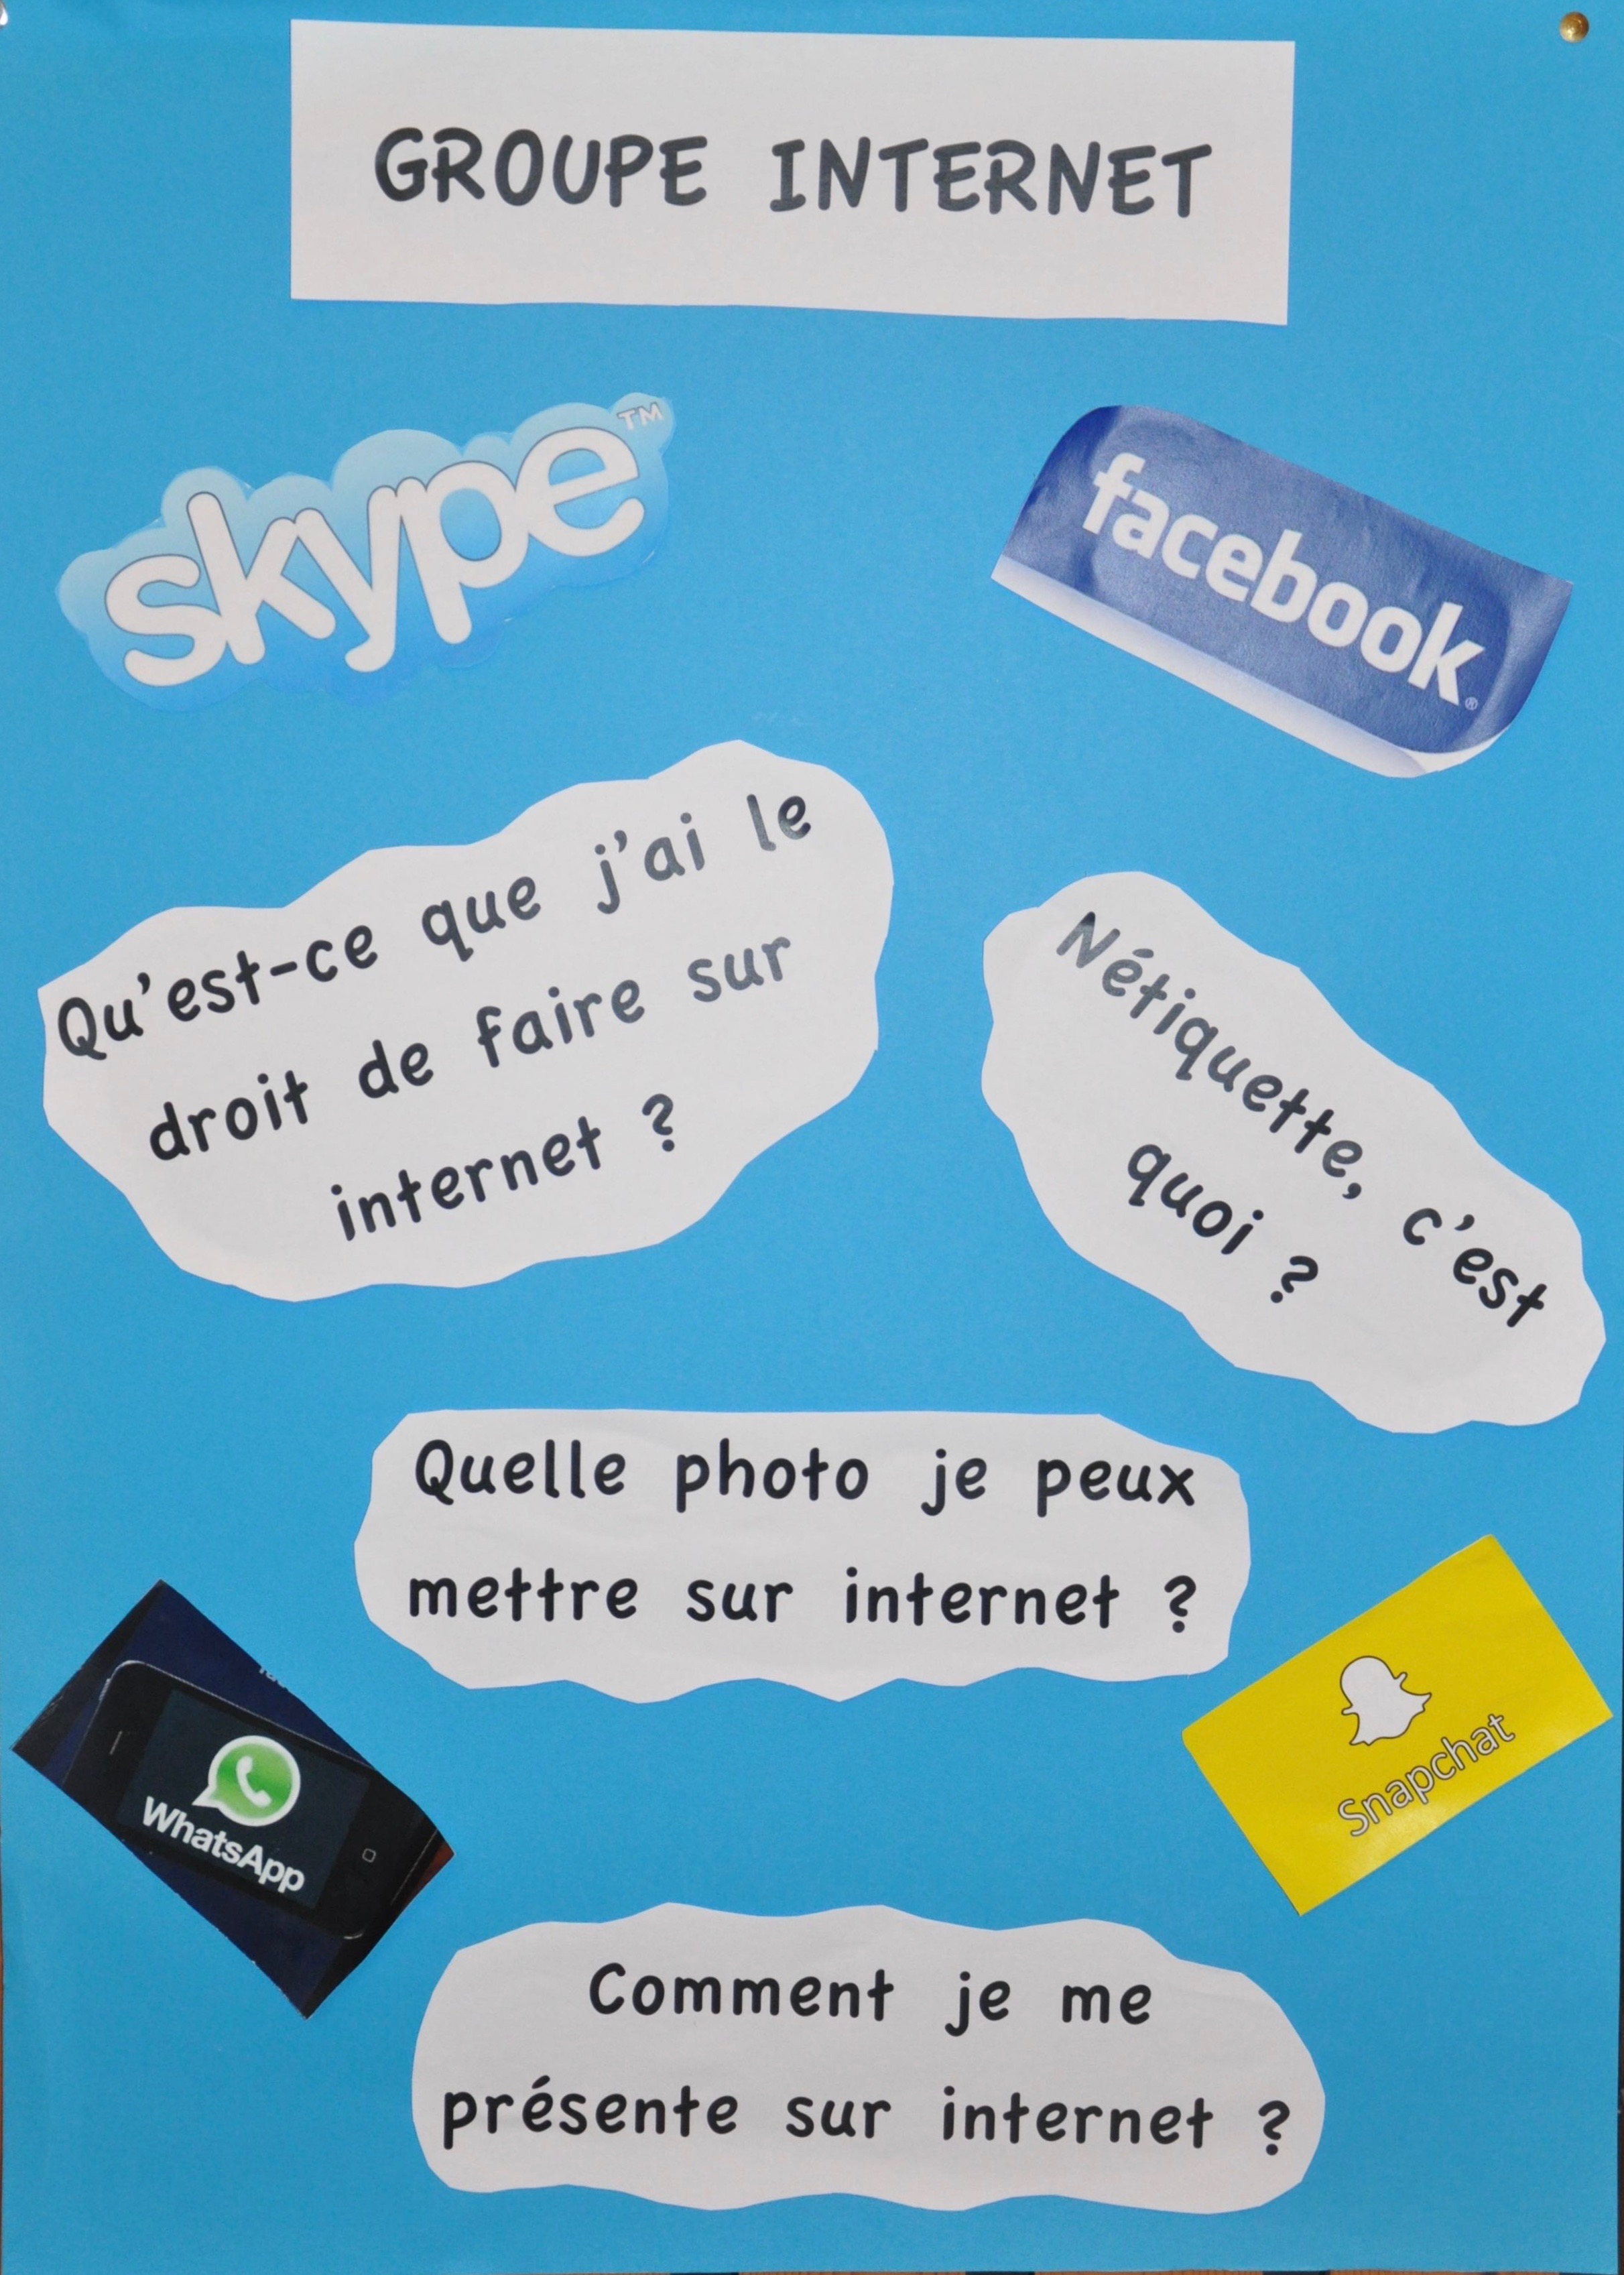 Groupe Internet